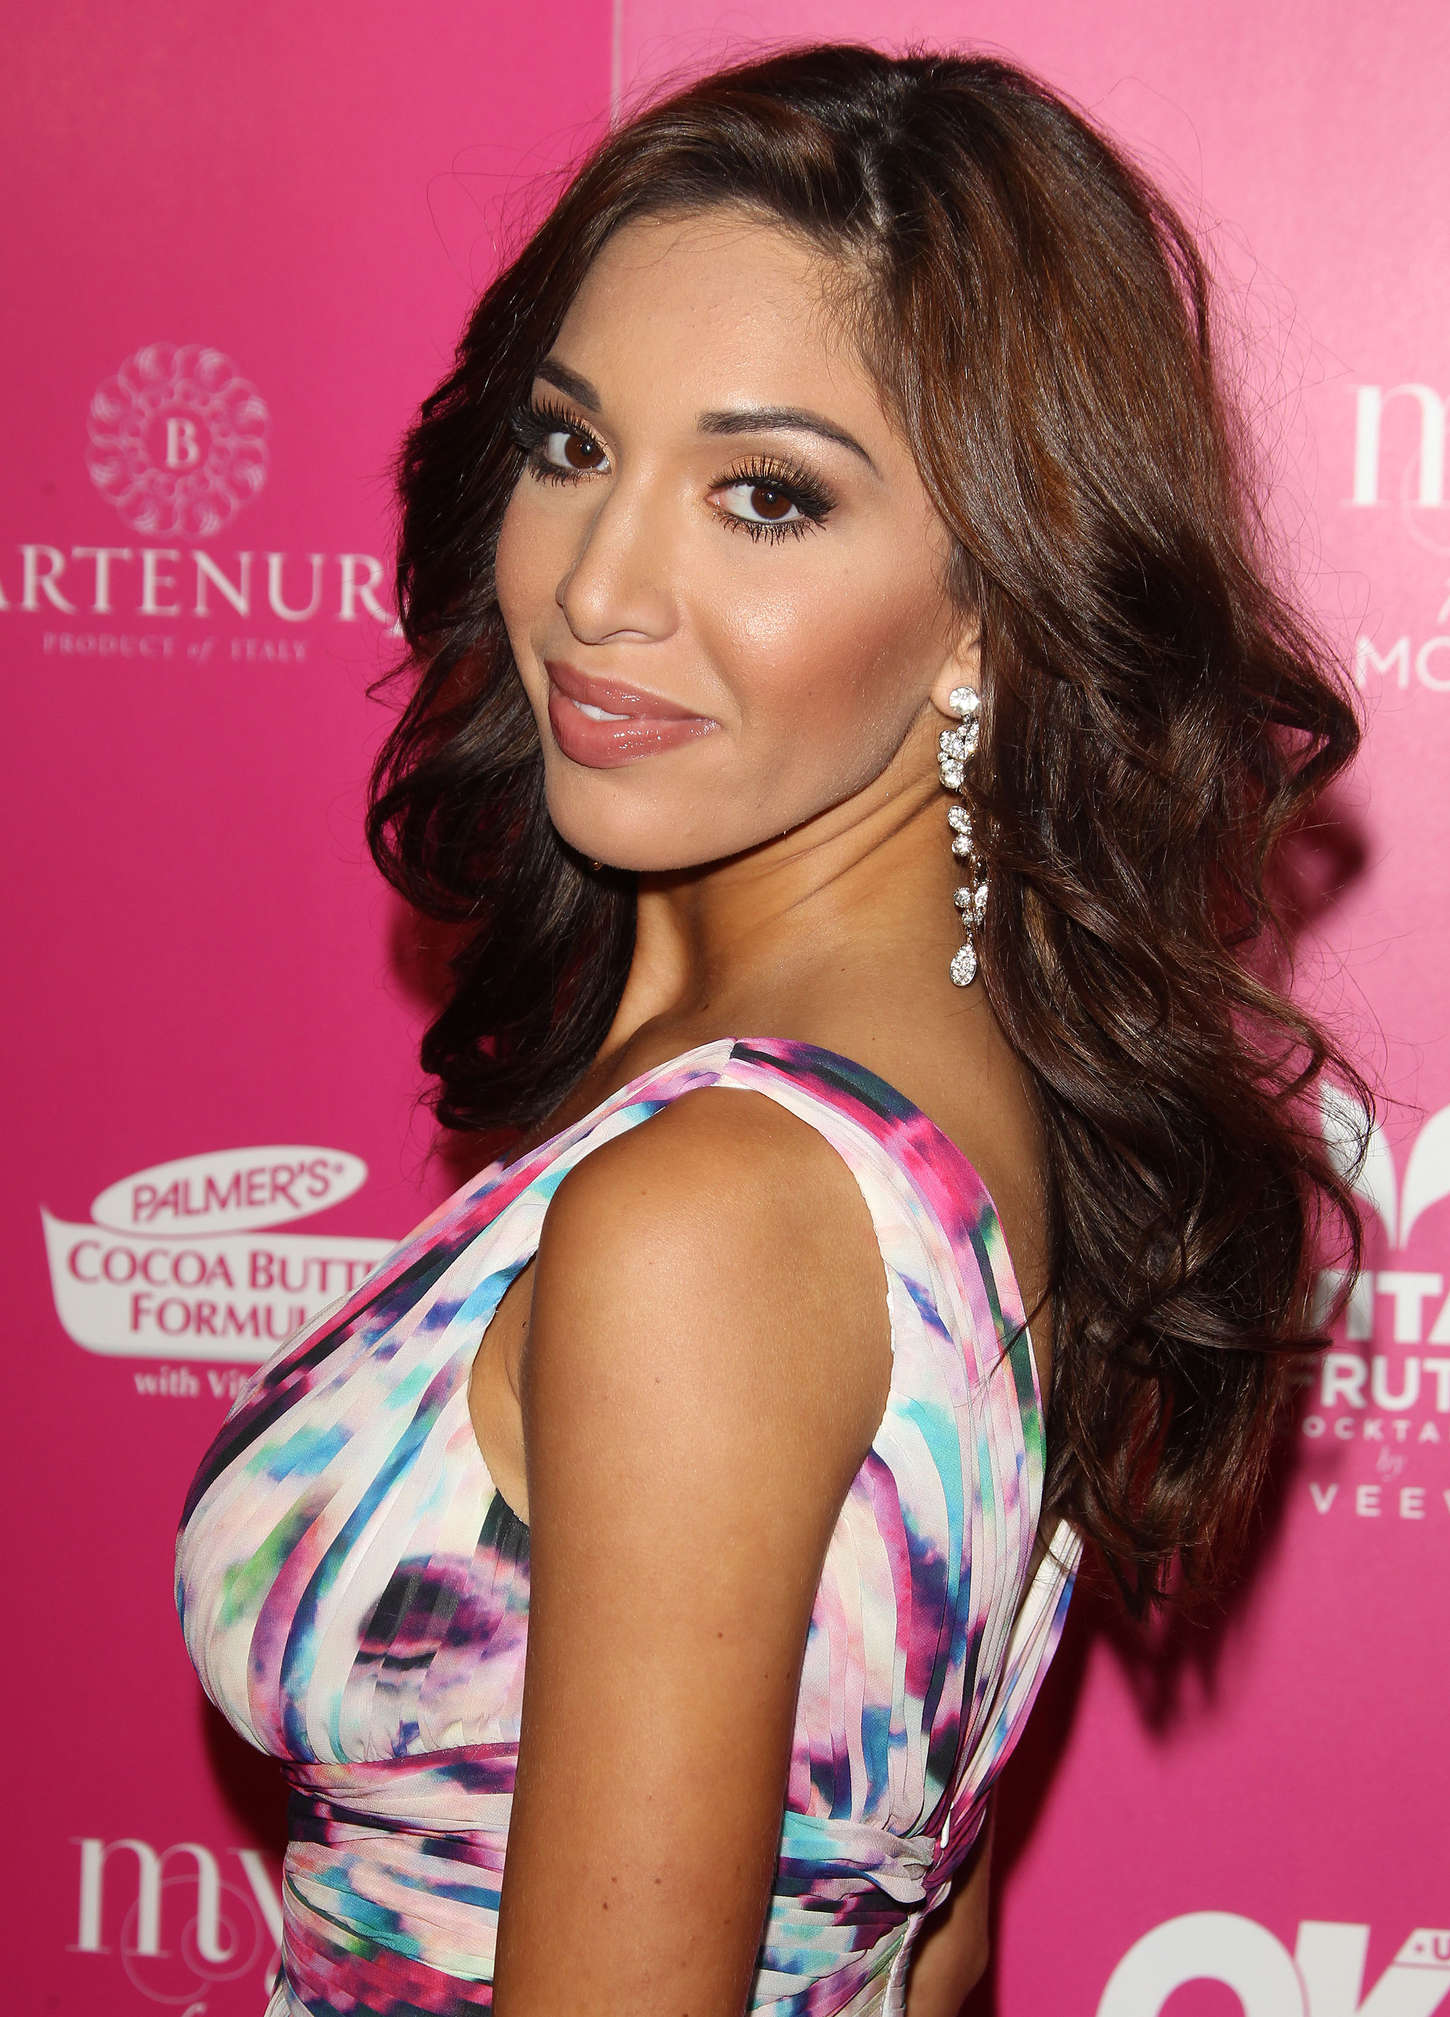 Farrah Abraham Wallpapers High Quality   Download Free